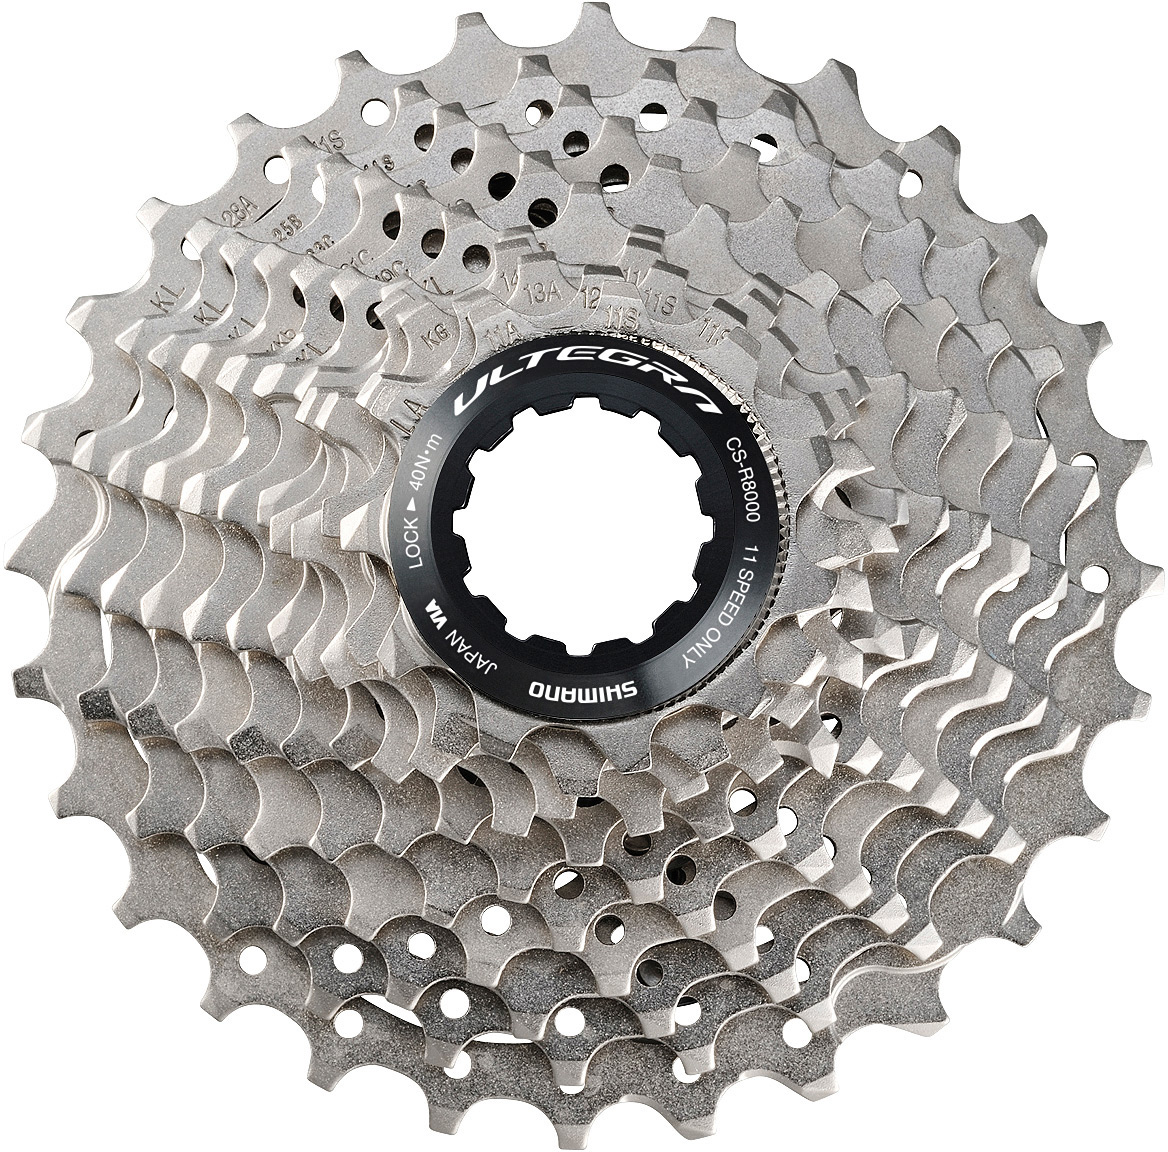 CS-R8000 Ultegra 11-speed cassette 11-25